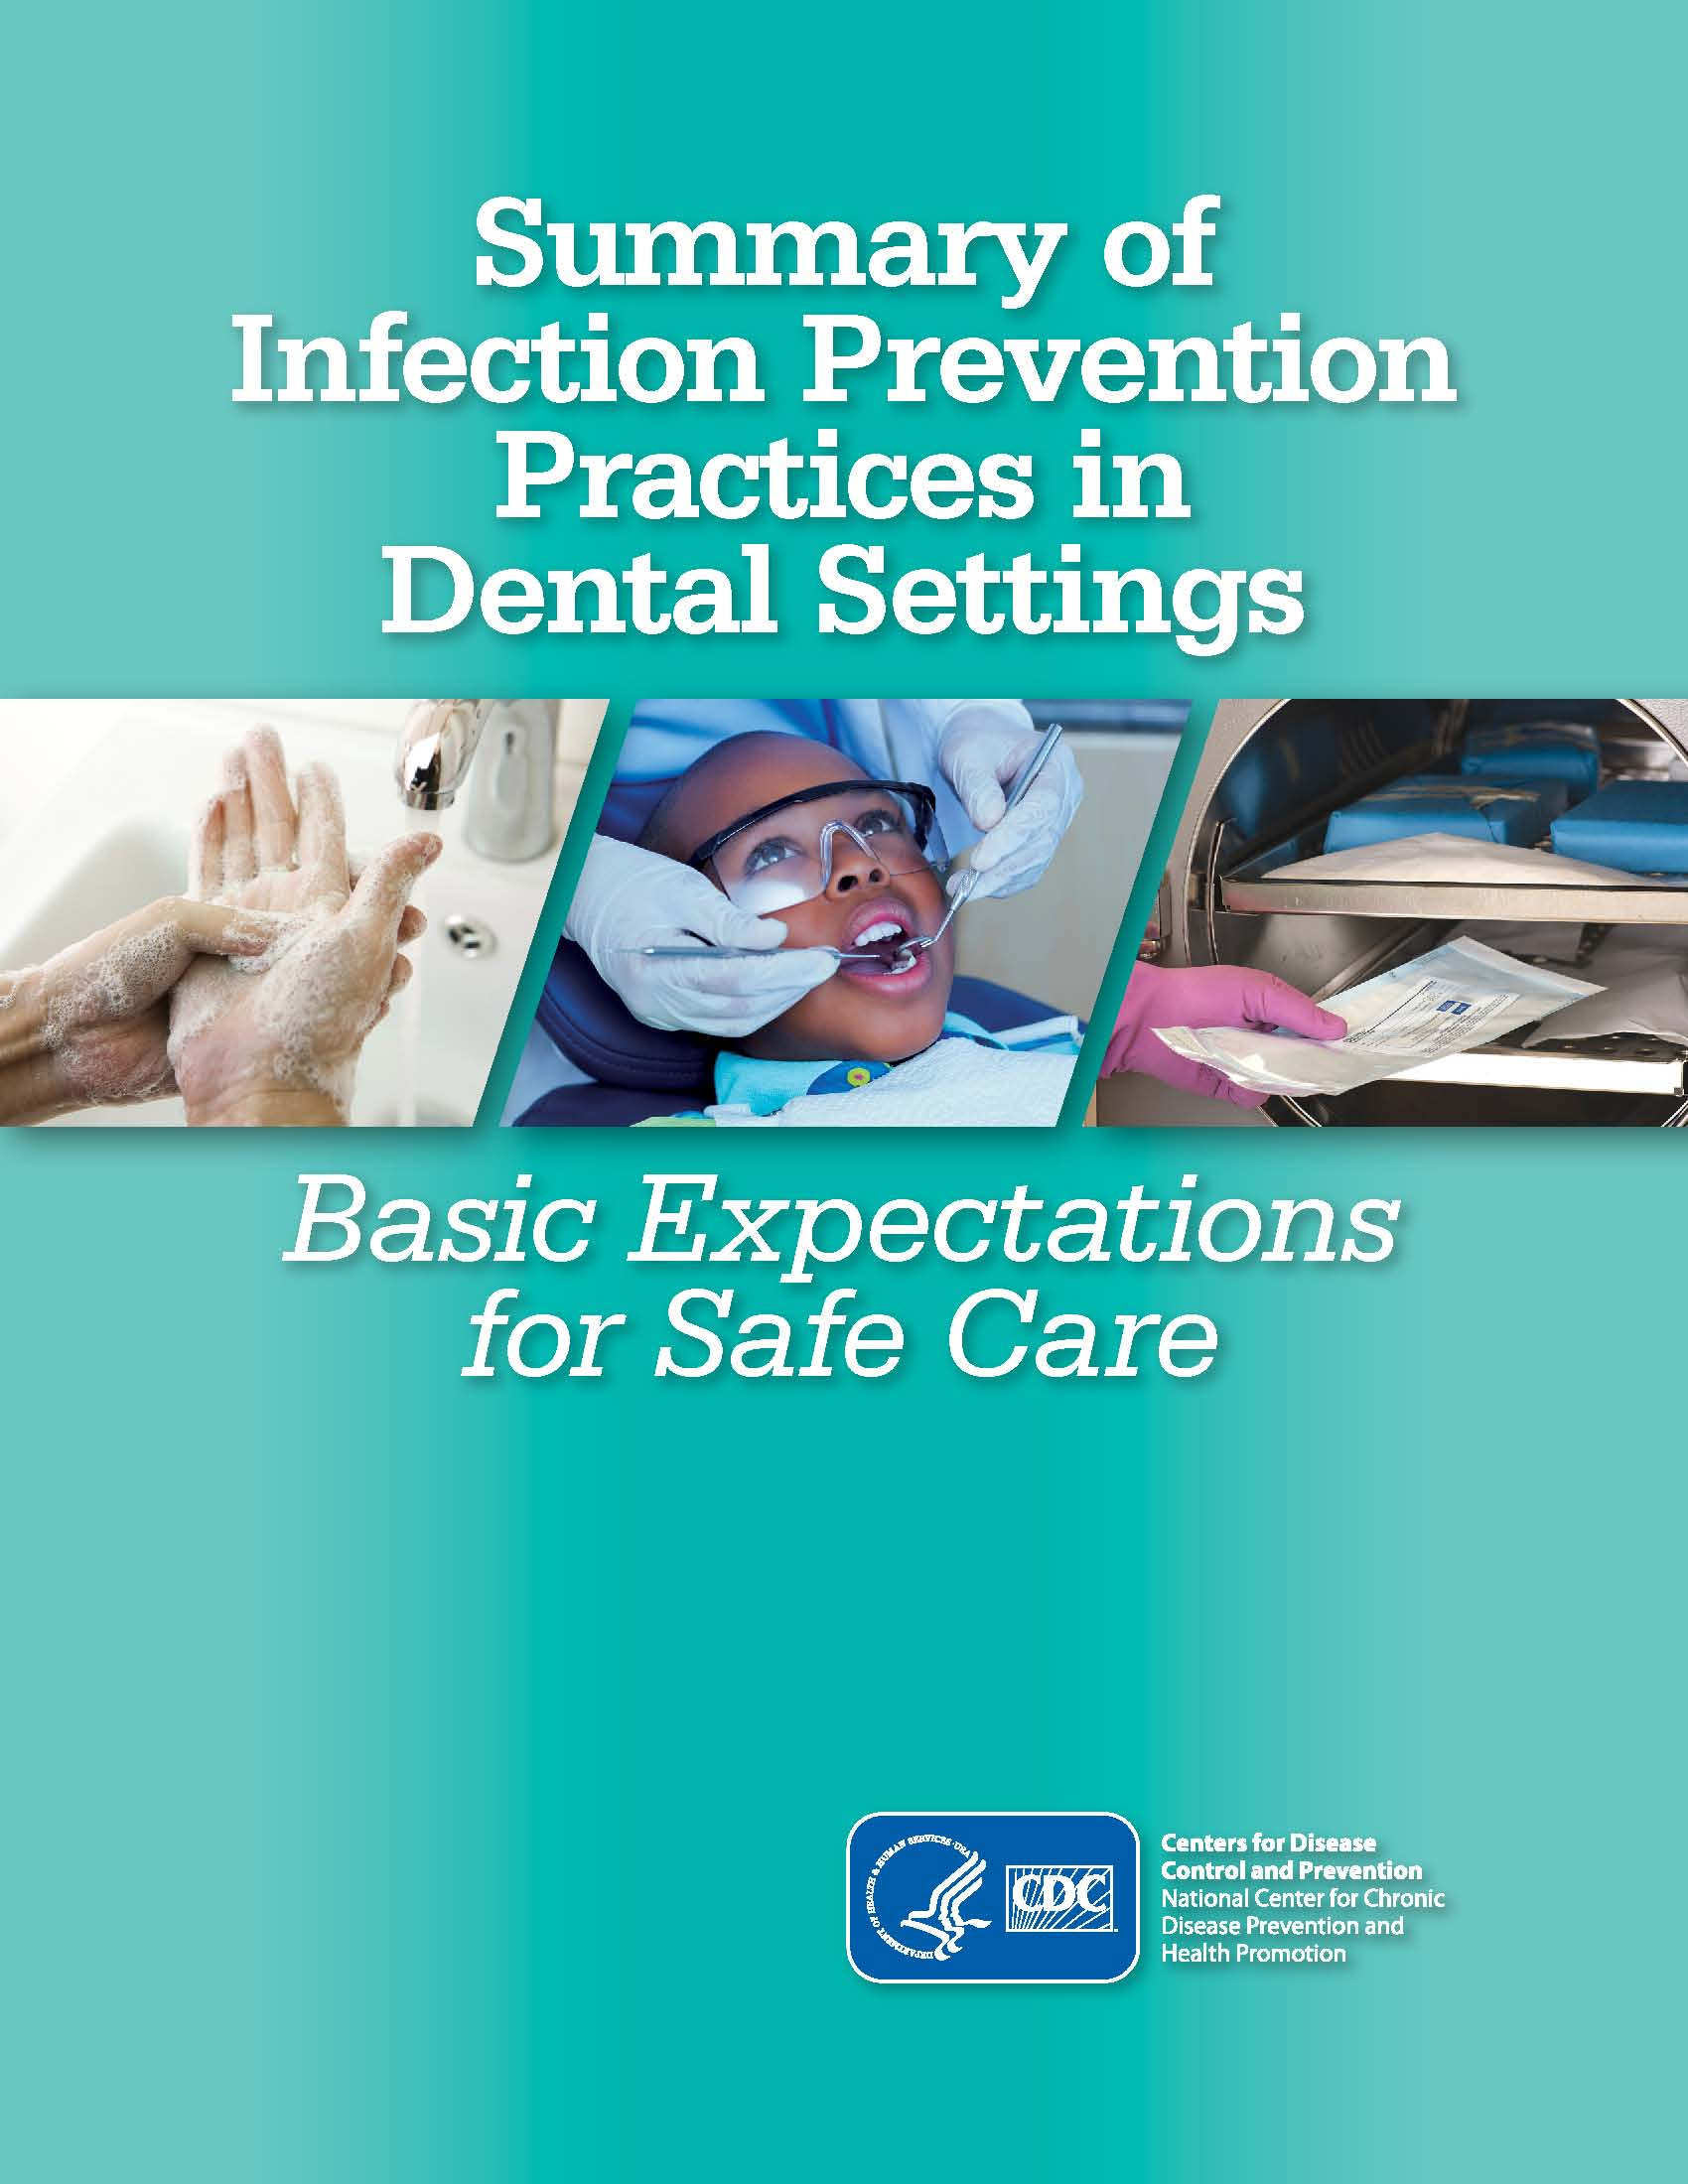 New 2016 CDC Guidelines for Infection Control in Dental Settings